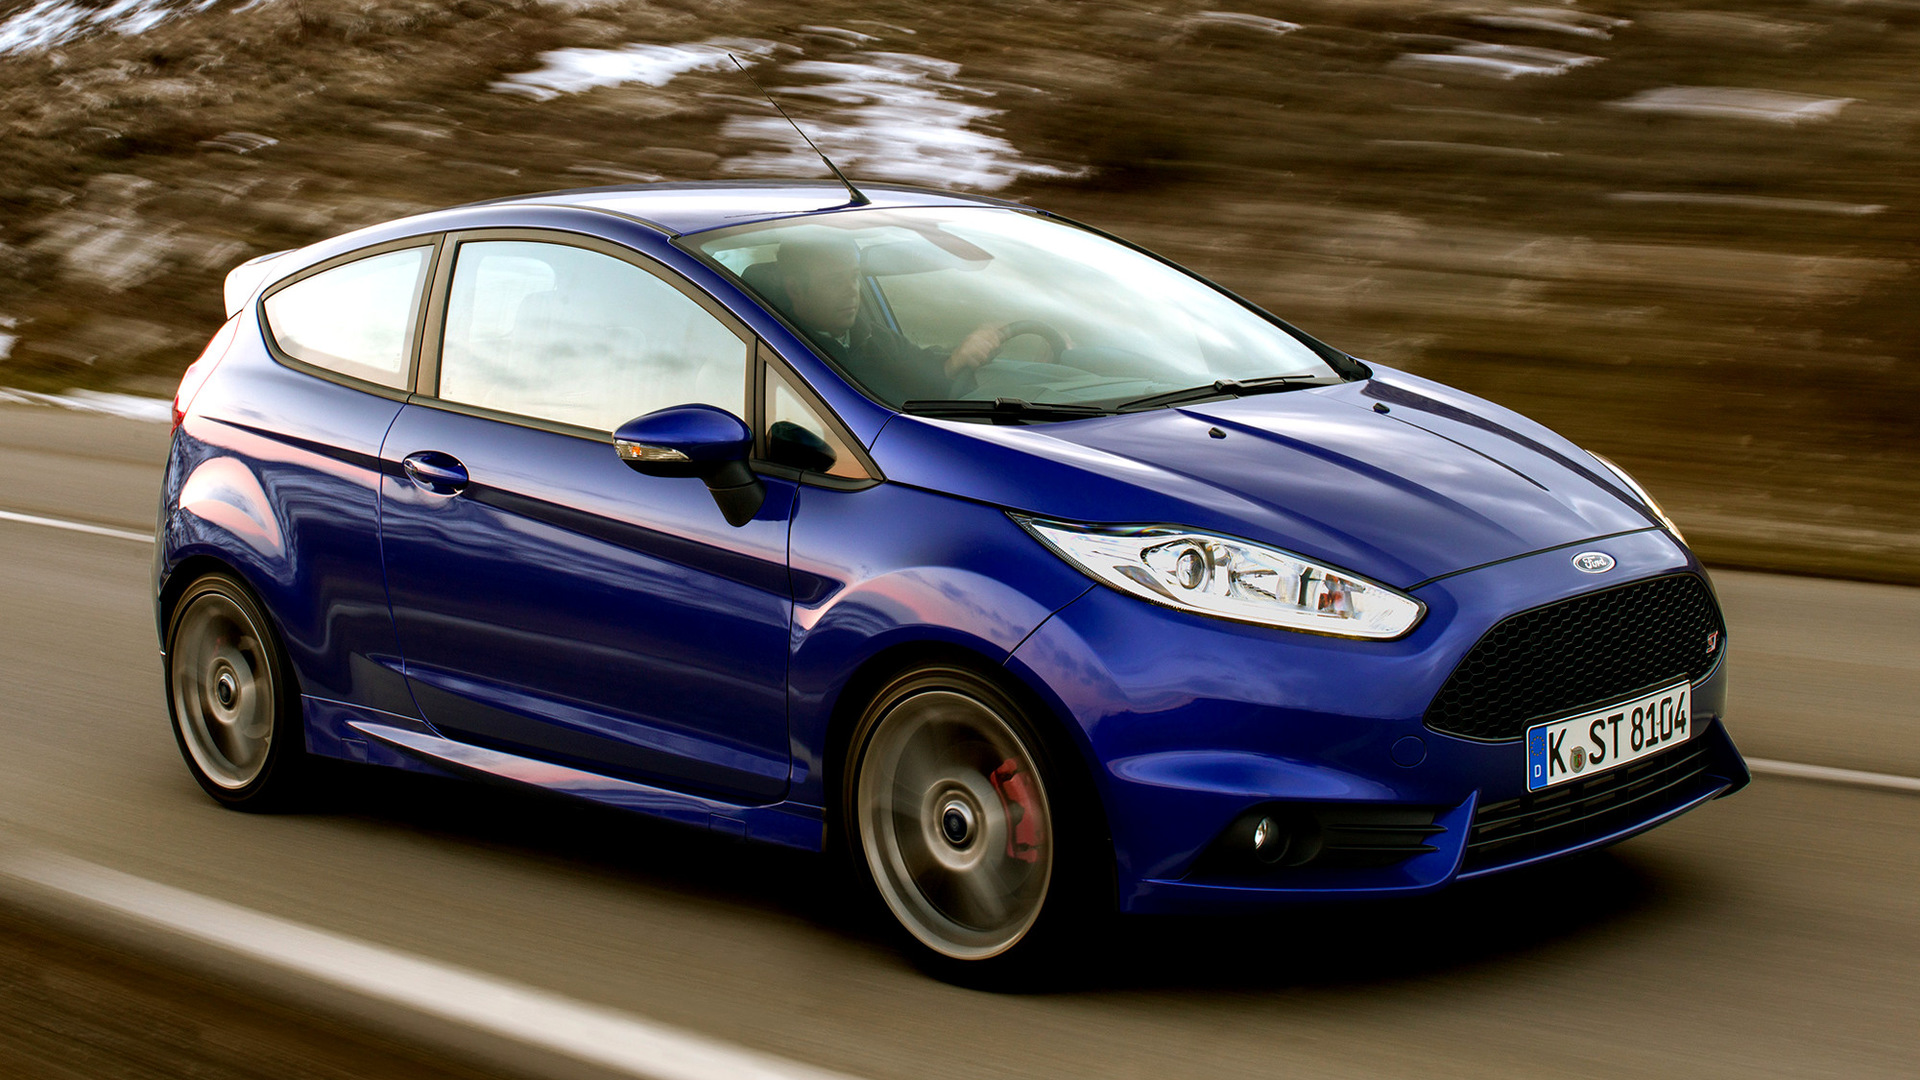 ford fiesta st 3 door 2013 wallpapers and hd images car pixel. Black Bedroom Furniture Sets. Home Design Ideas